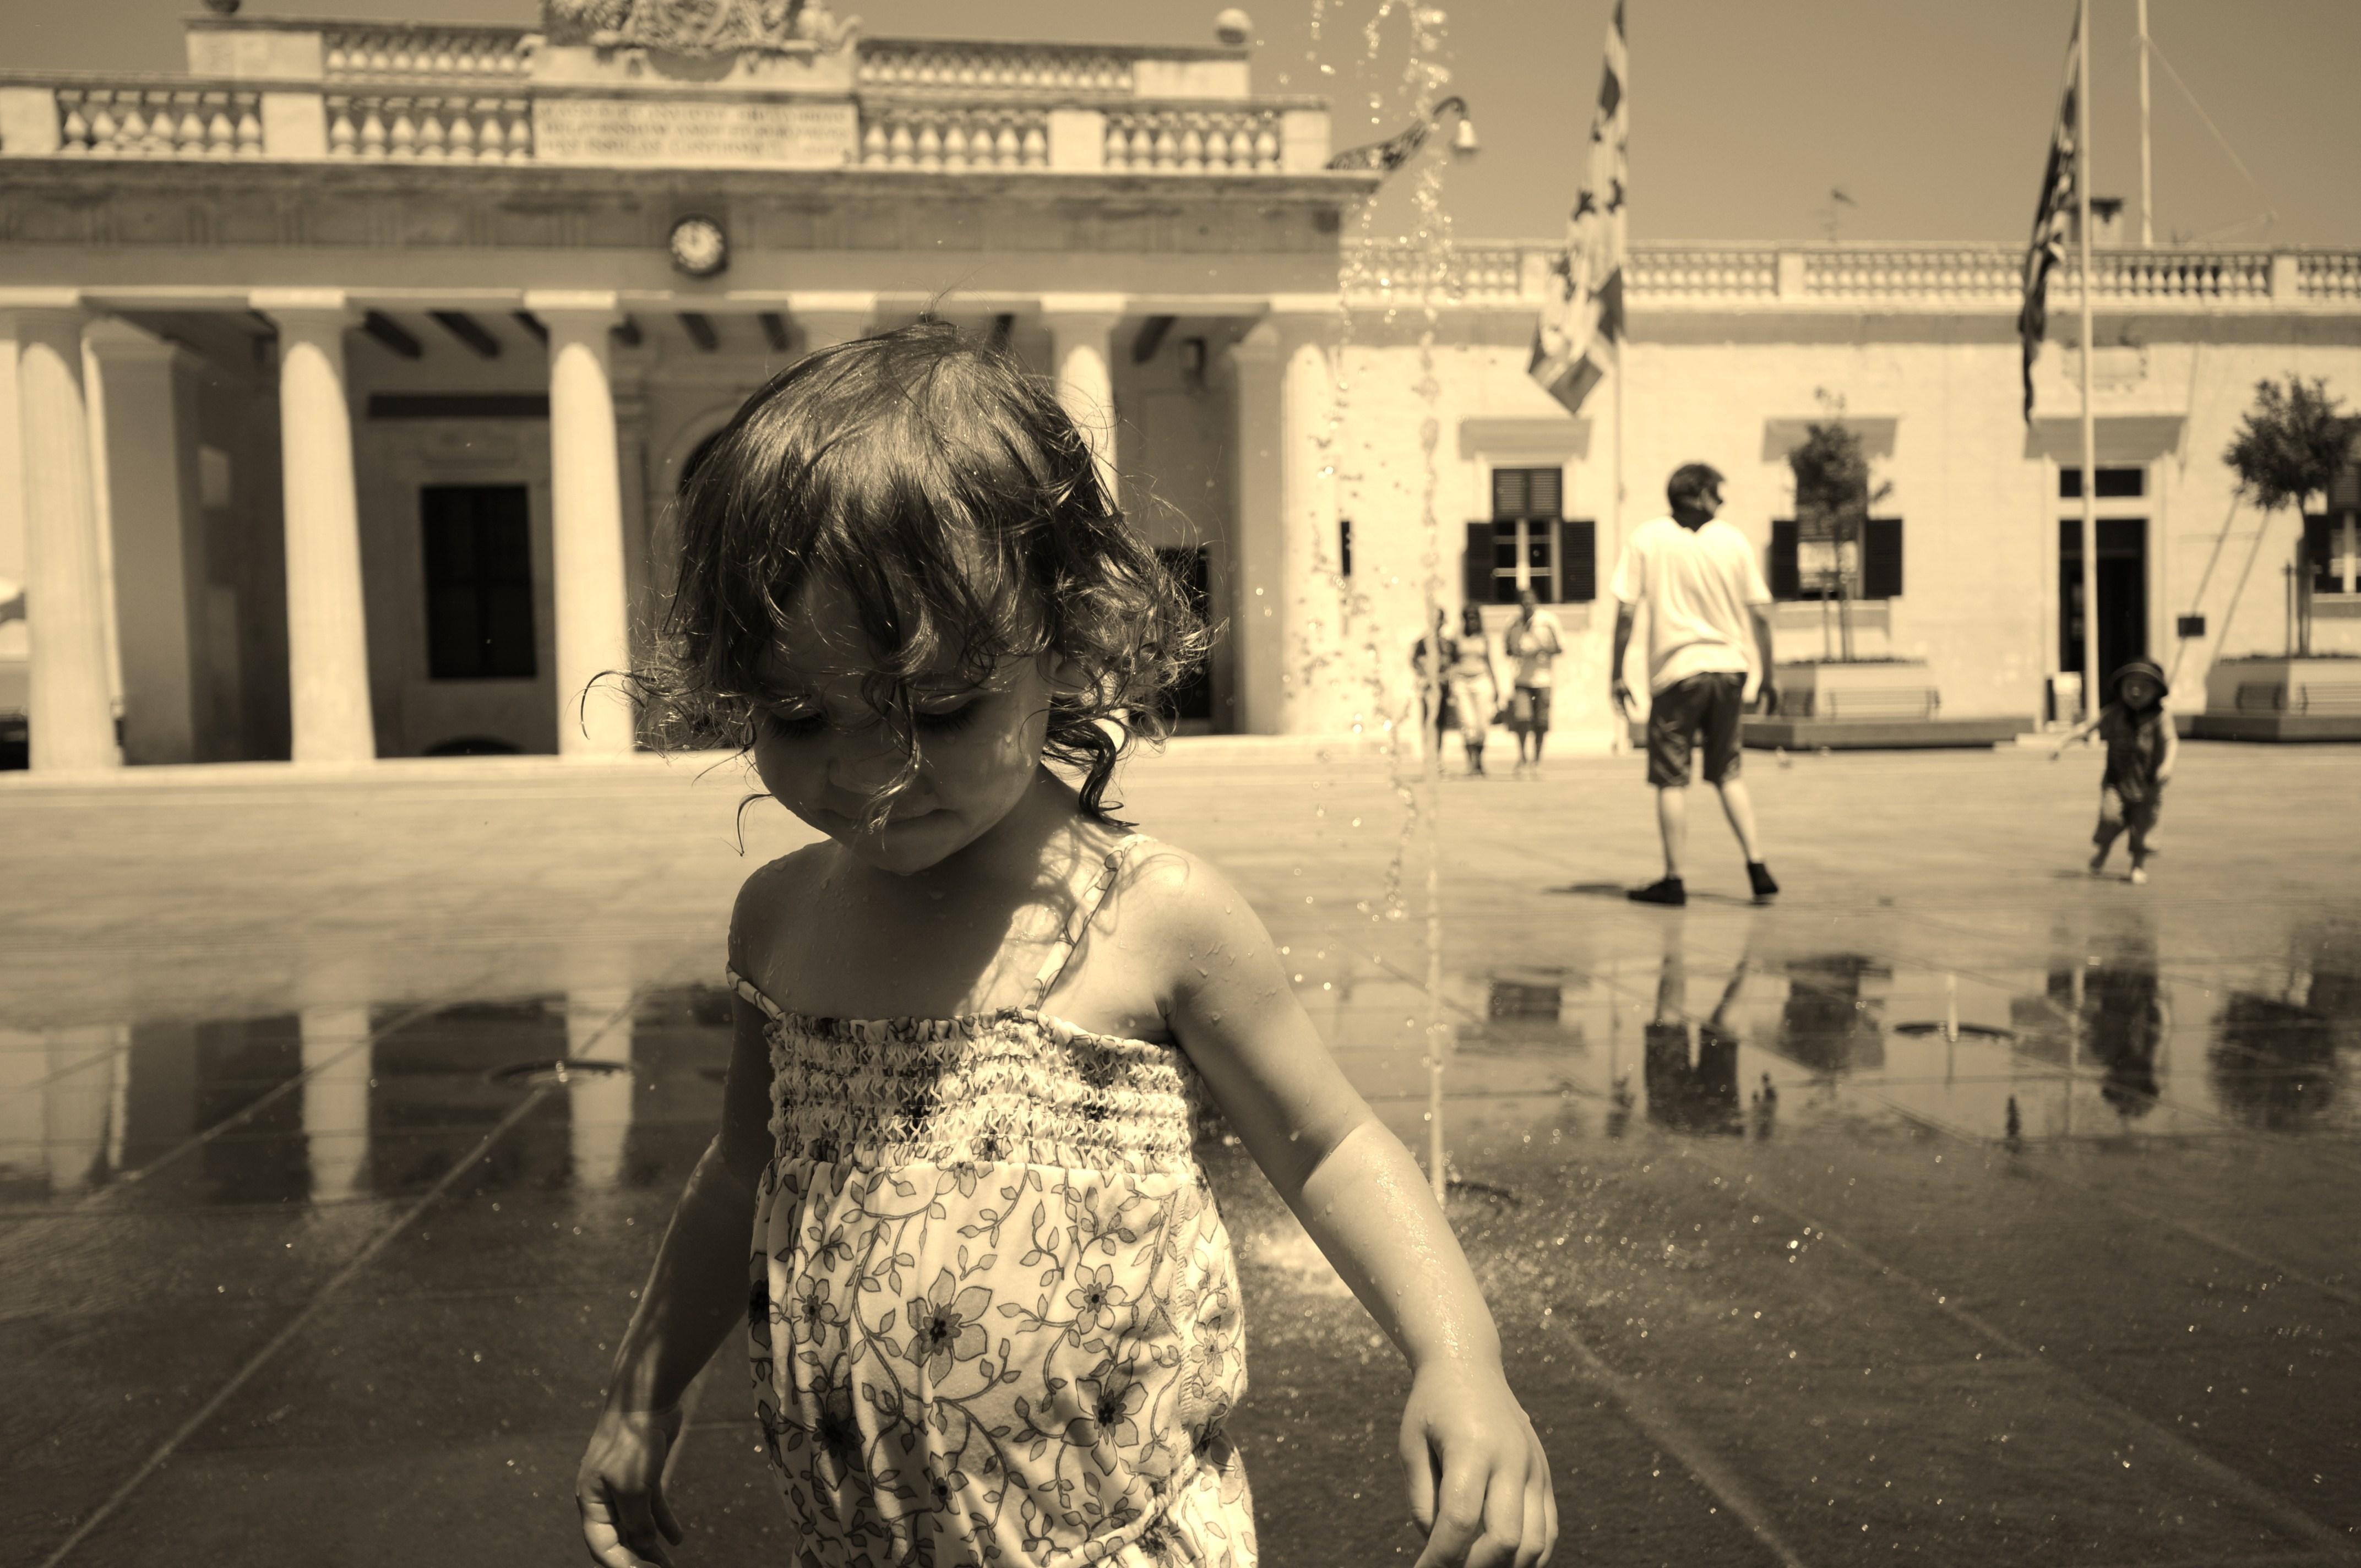 Playing in the fountain in Valletta